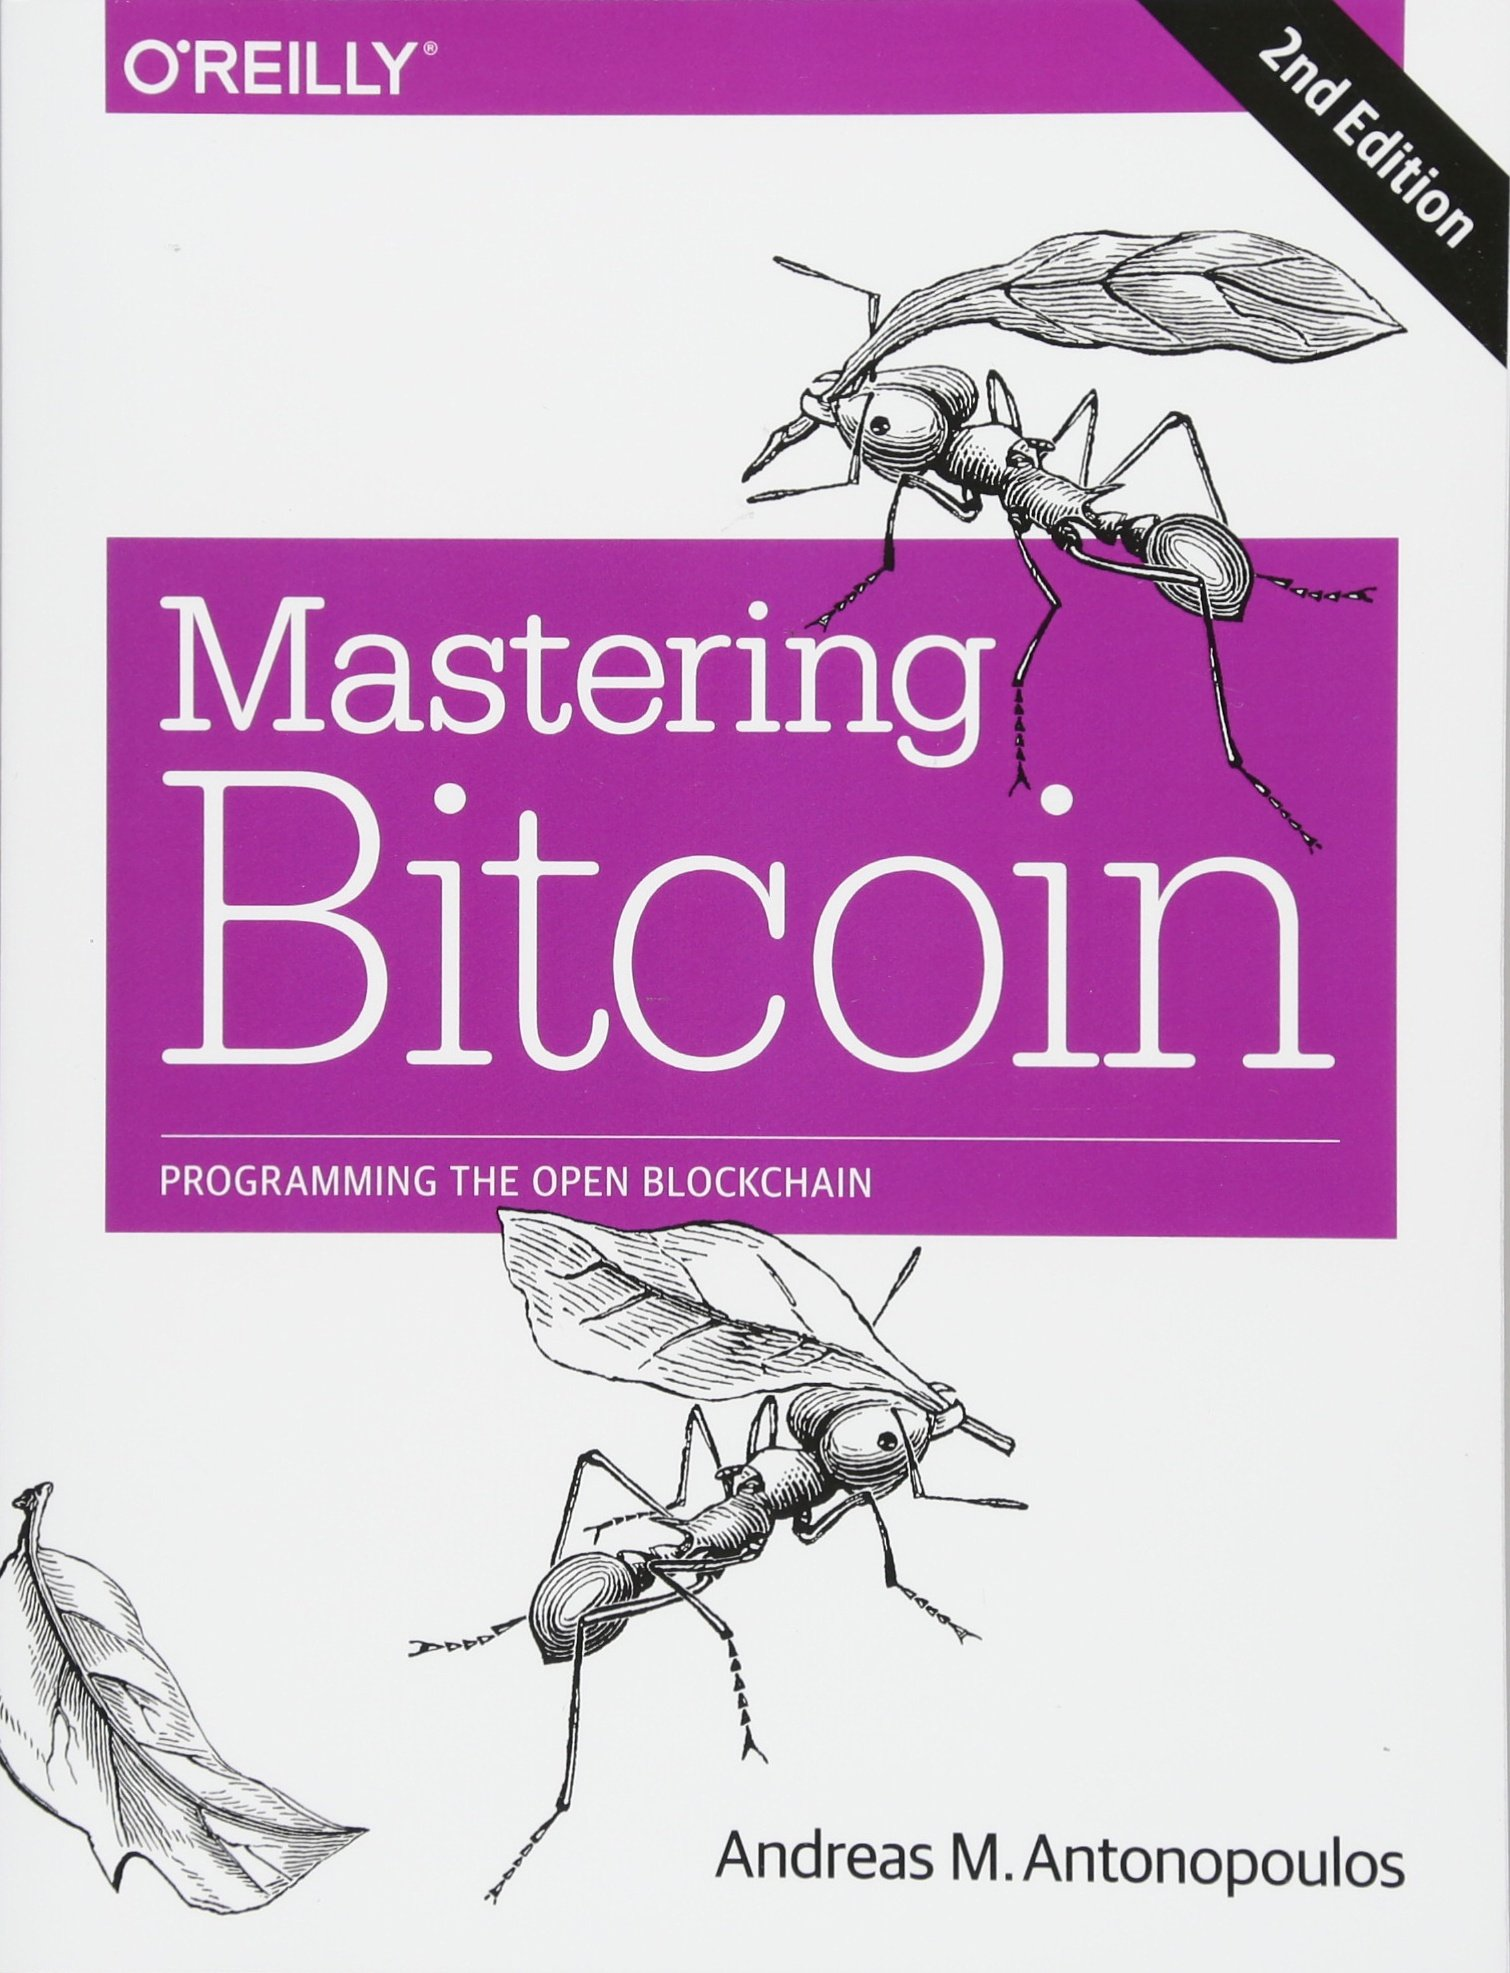 Mastering Bitcoin: Programming the Open Blockchain (Inglese) Copertina flessibile – 16 giu 2017 Andreas M. Antonopoulos Oreilly & Associates Inc 1491954388 Computers